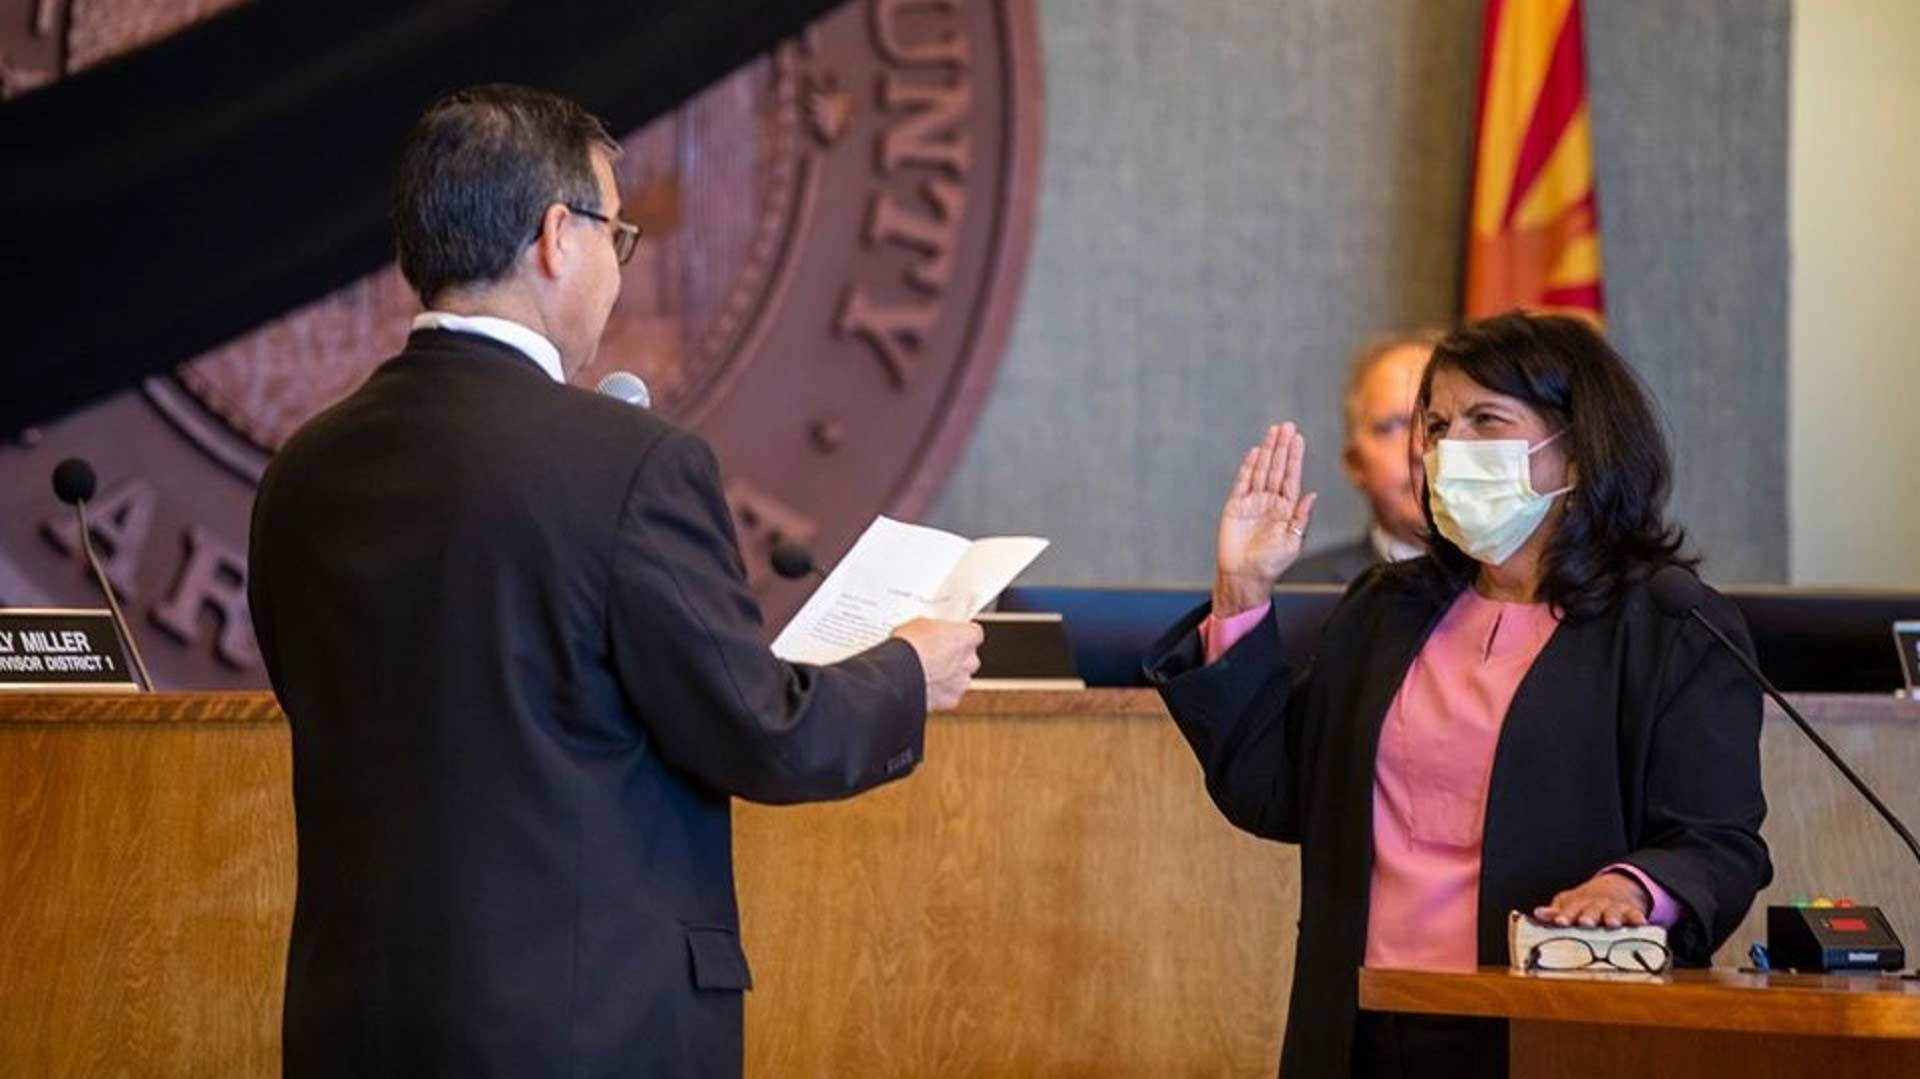 Pima County Supervisor Betty Villegas is sworn into office by Supervisors Chairman Ramon Valadez at the April 9, 2020 board meeting.   Villegas was appointed to fill the District 5 seat vacated by the death of Supervisor Richard Elías.